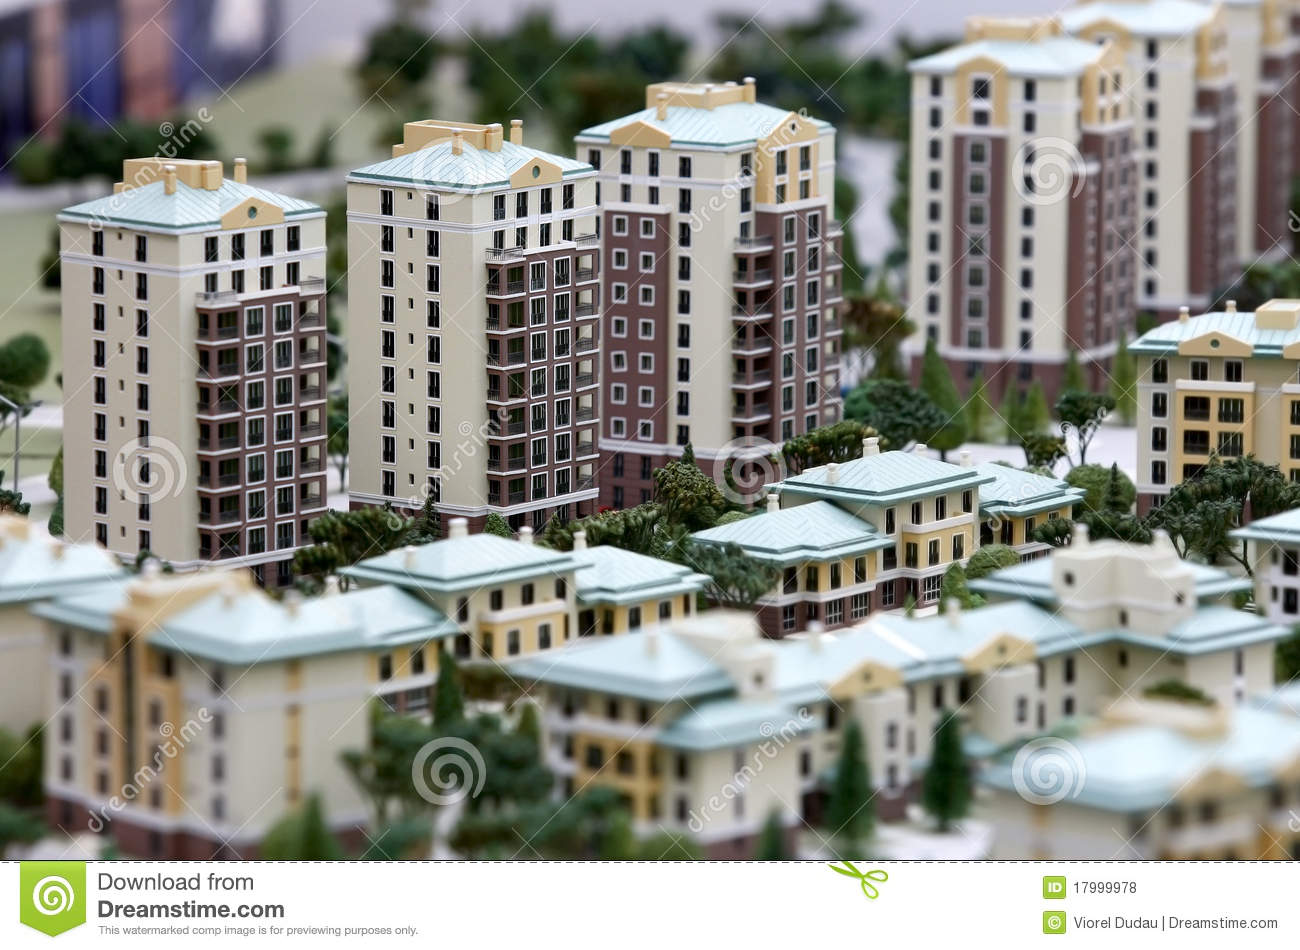 Building miniatures real estate stock photo image of for Building an estate